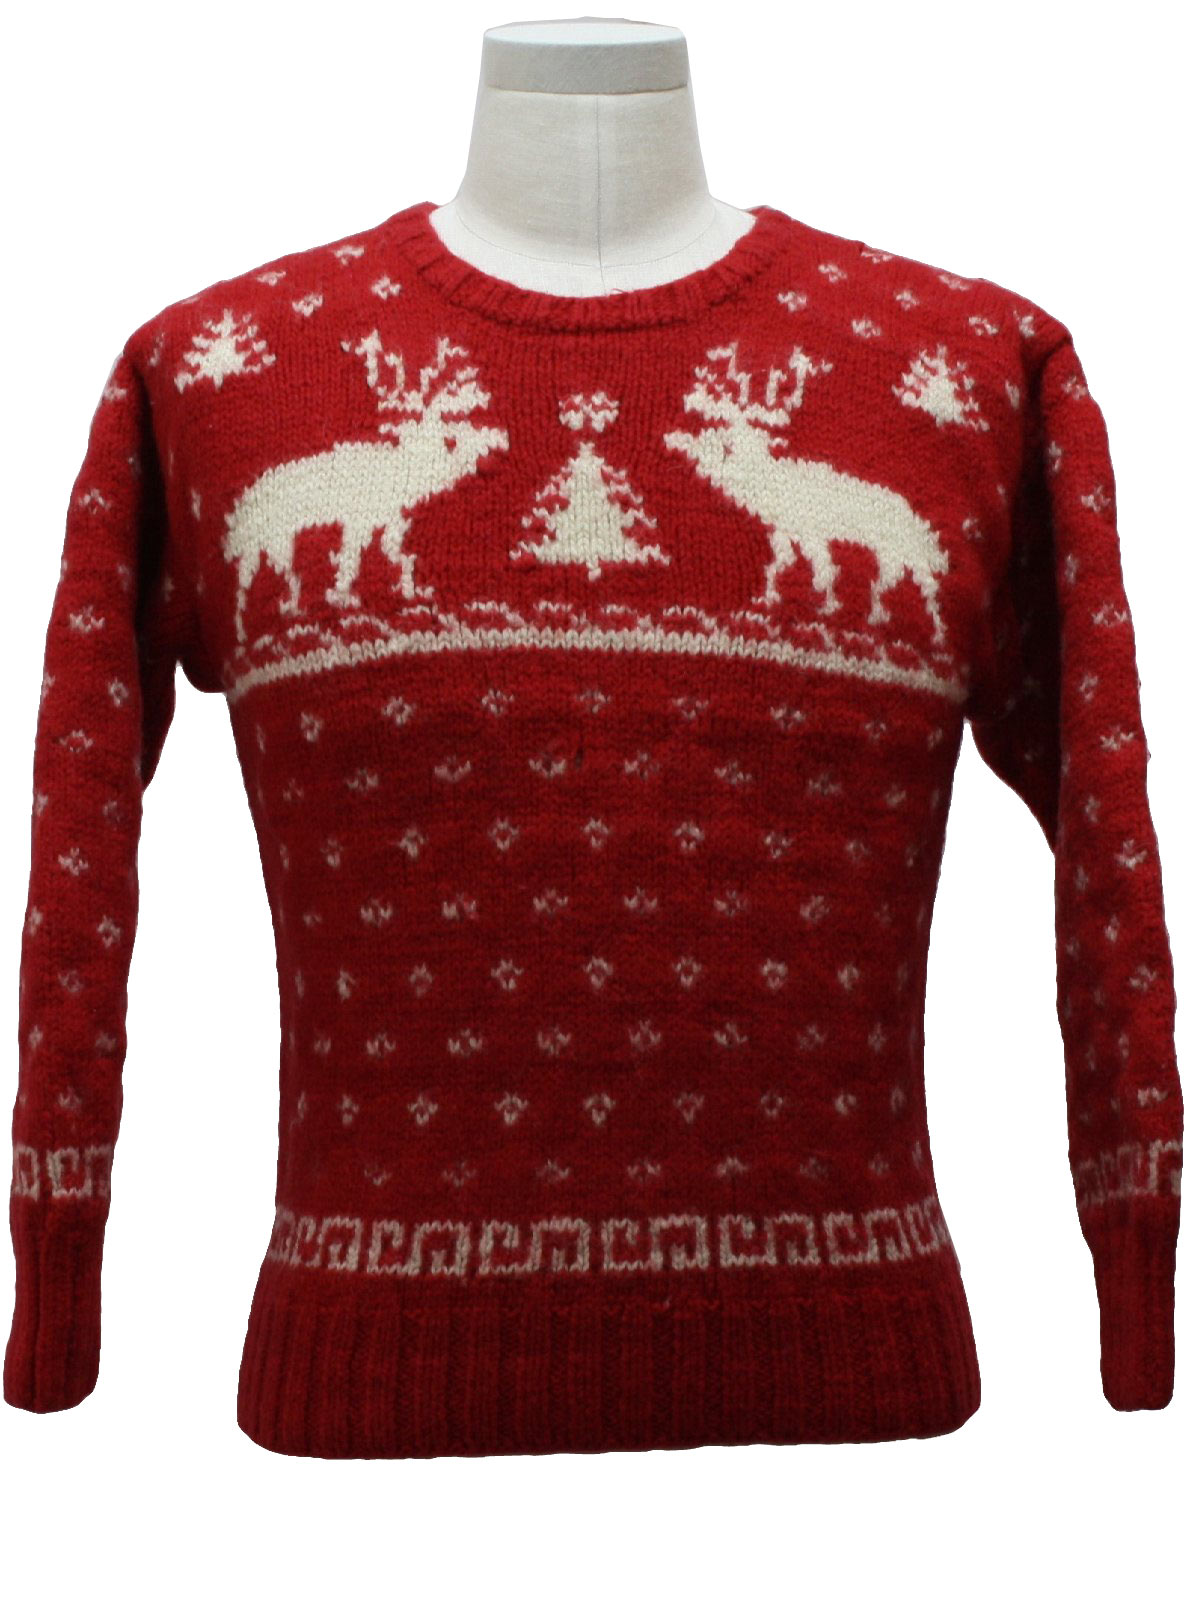 Childs Classic Reindeer Ugly Christmas Sweater: -Marco Pecci ...